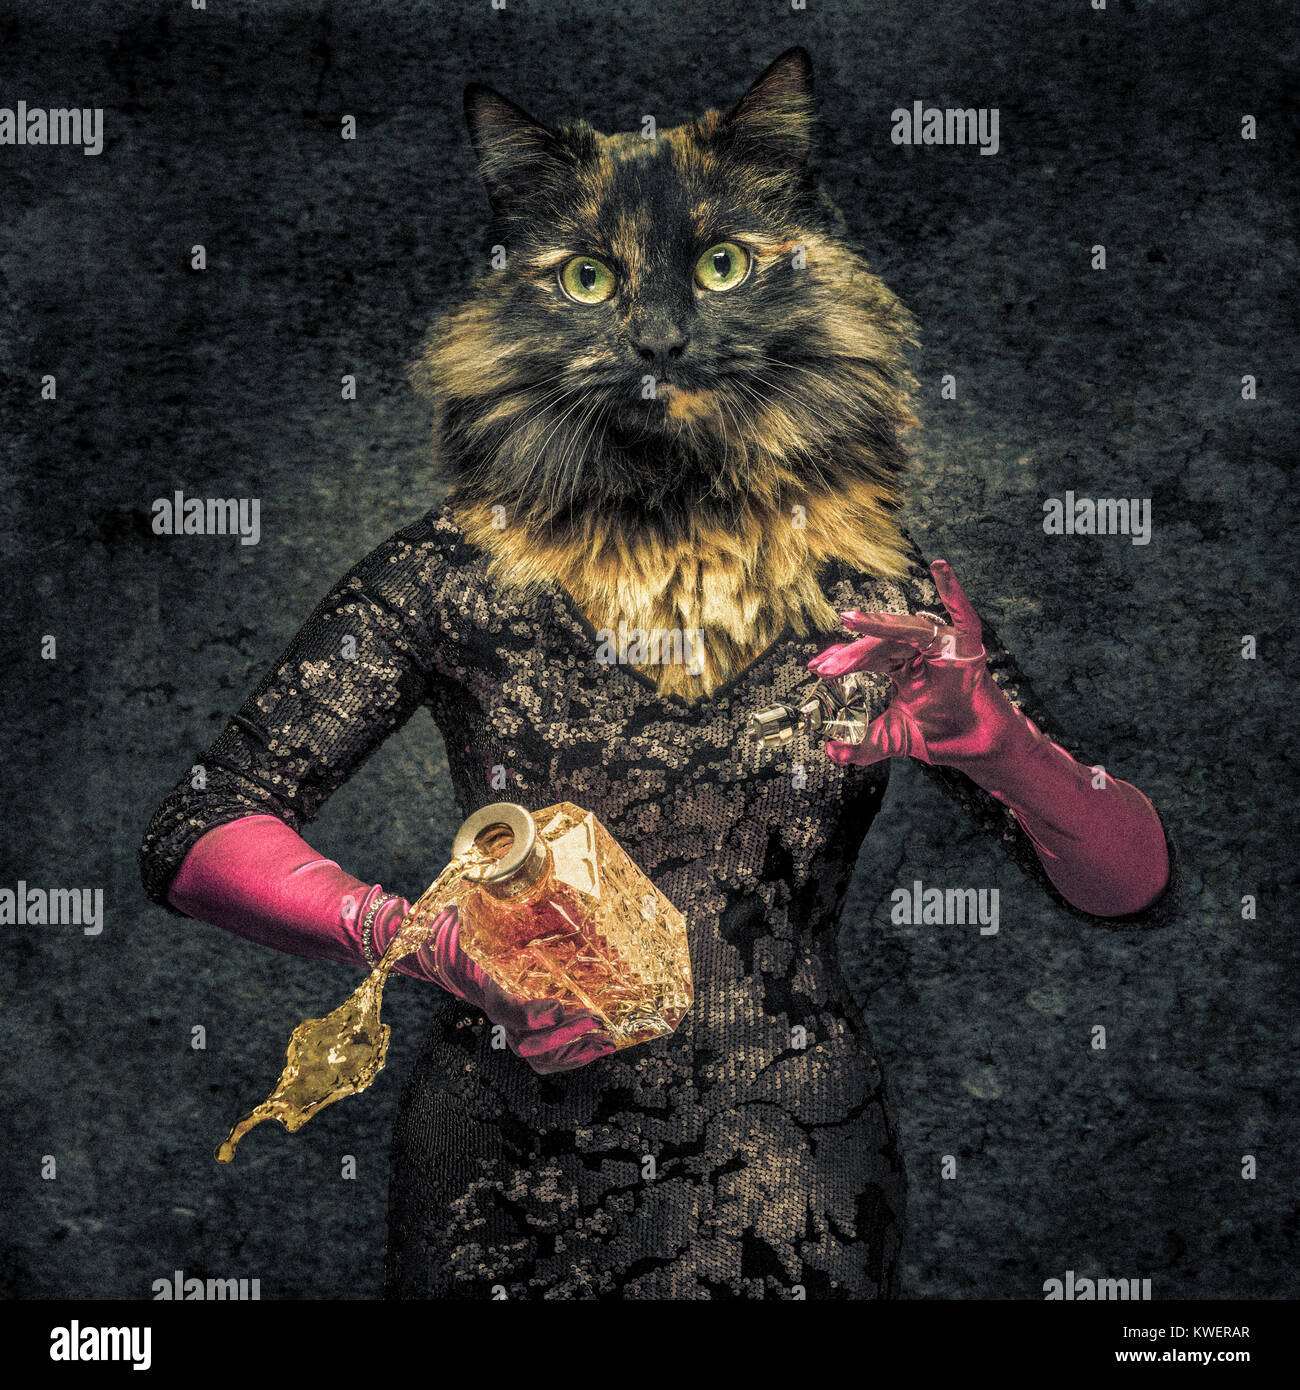 Human body with cat head hybrid creature holding decanter with drink spilling out. - Stock Image